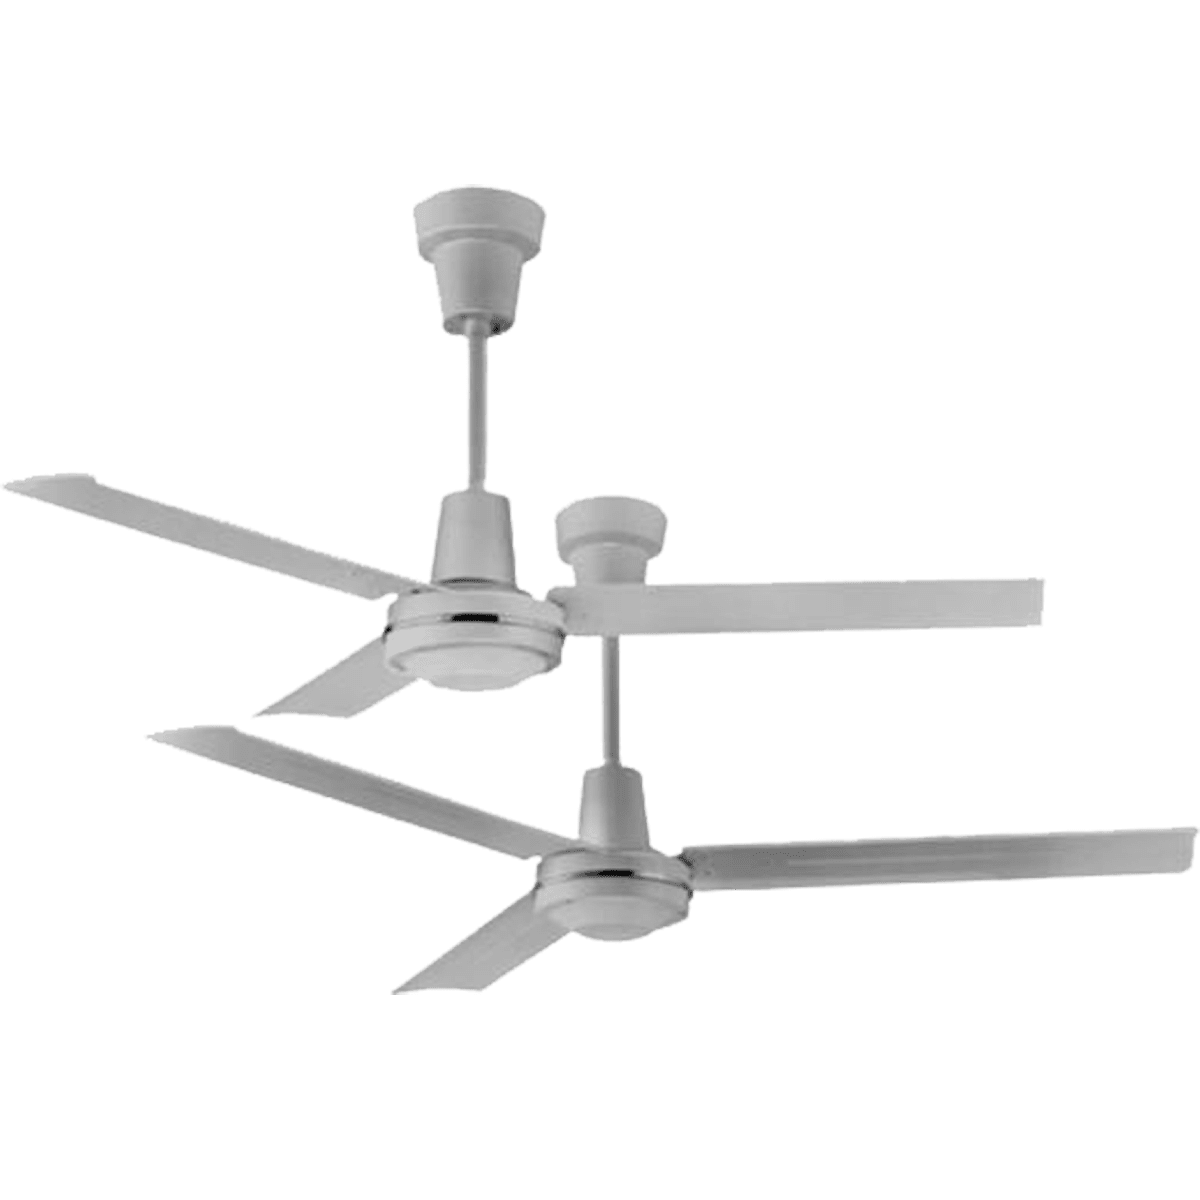 How To Add Ceiling Fan In Revit - Ceiling Fans Ideas